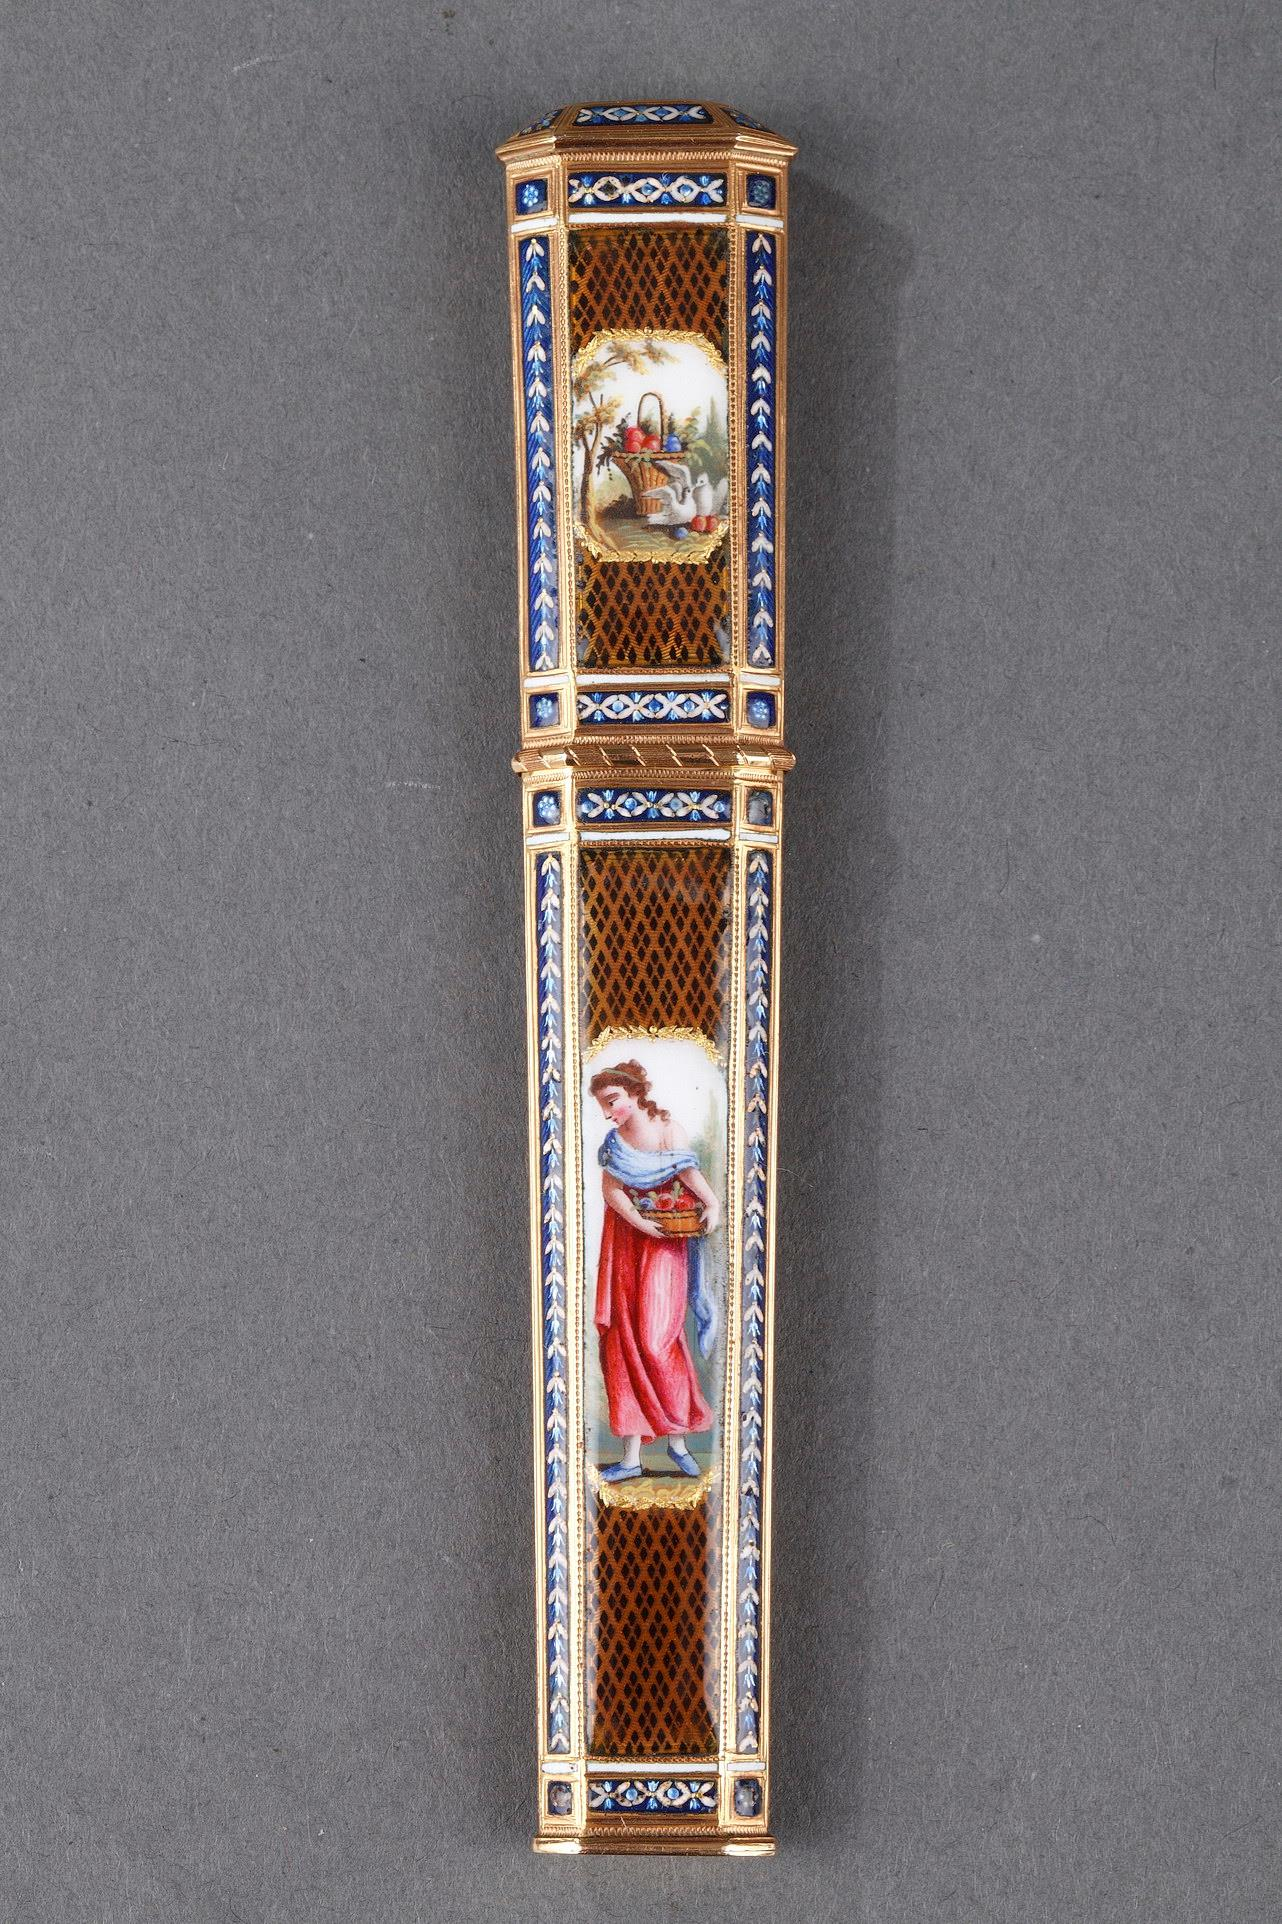 GOLD AND ENAMEL NEEDLE CASE.<br/> LATE 18TH CENTURY SWISS WORK.